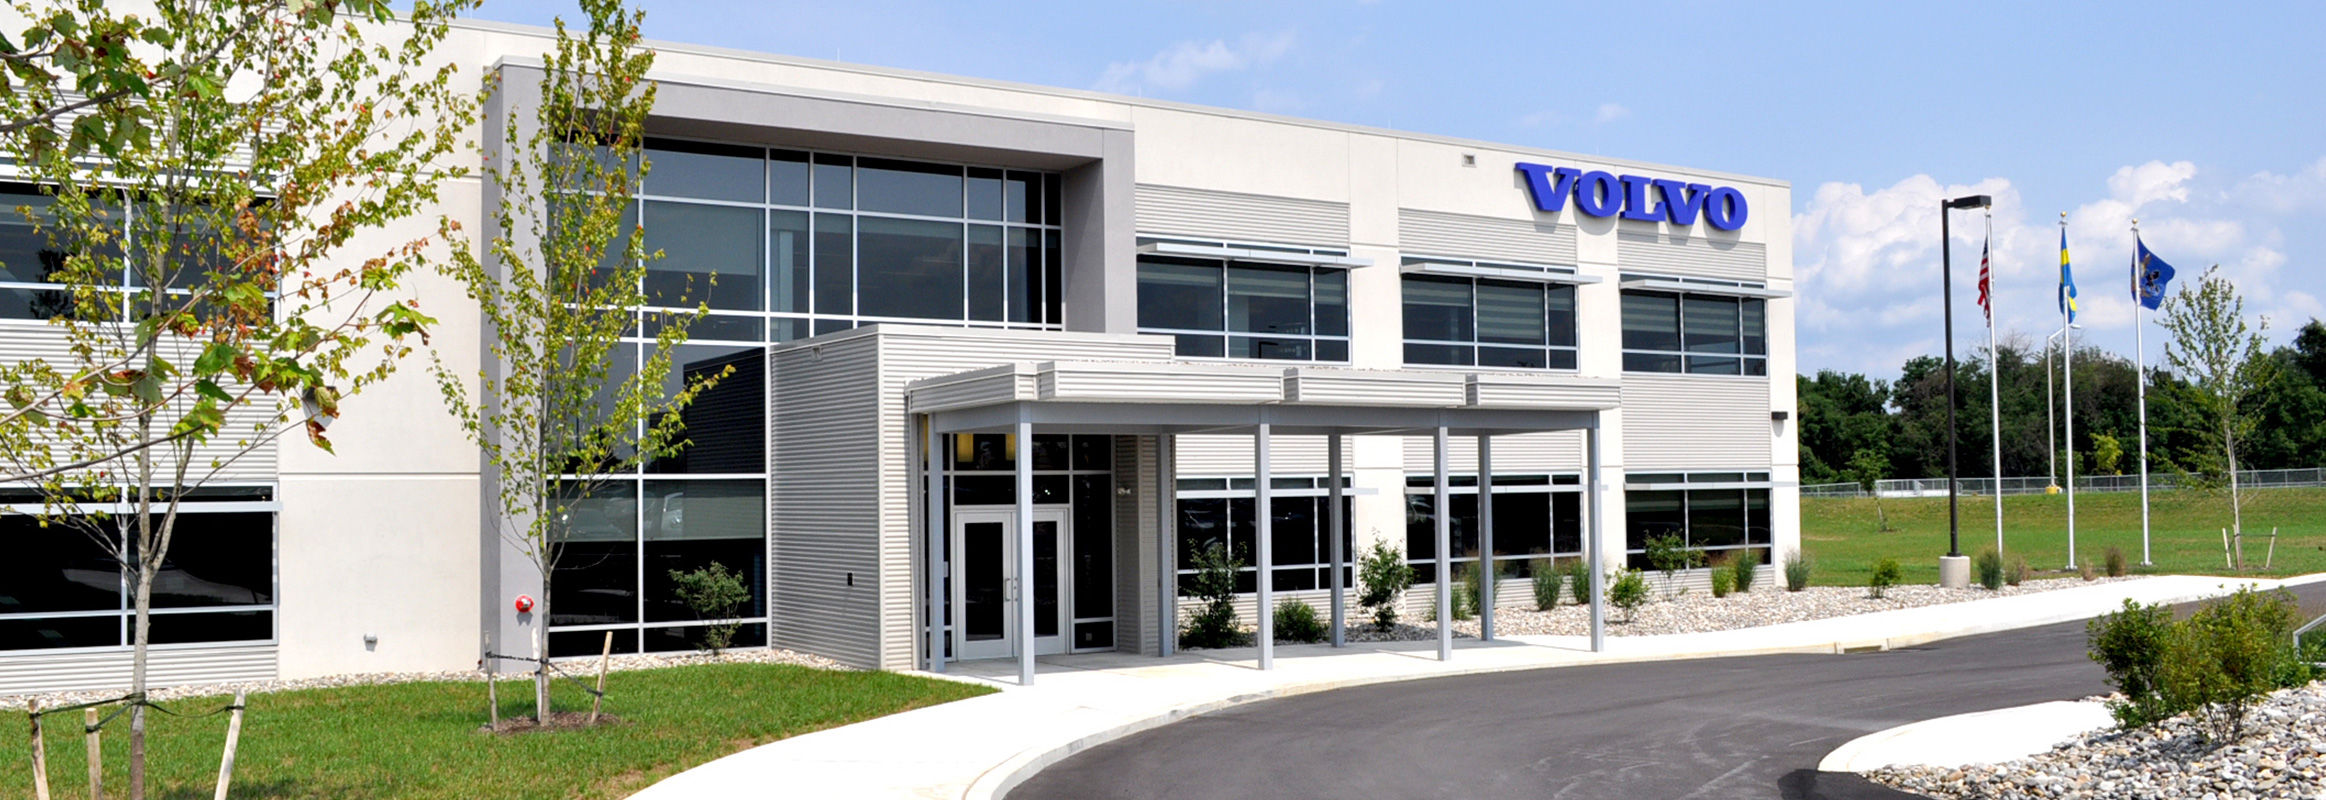 Our locations | Volvo Construction Equipment Global